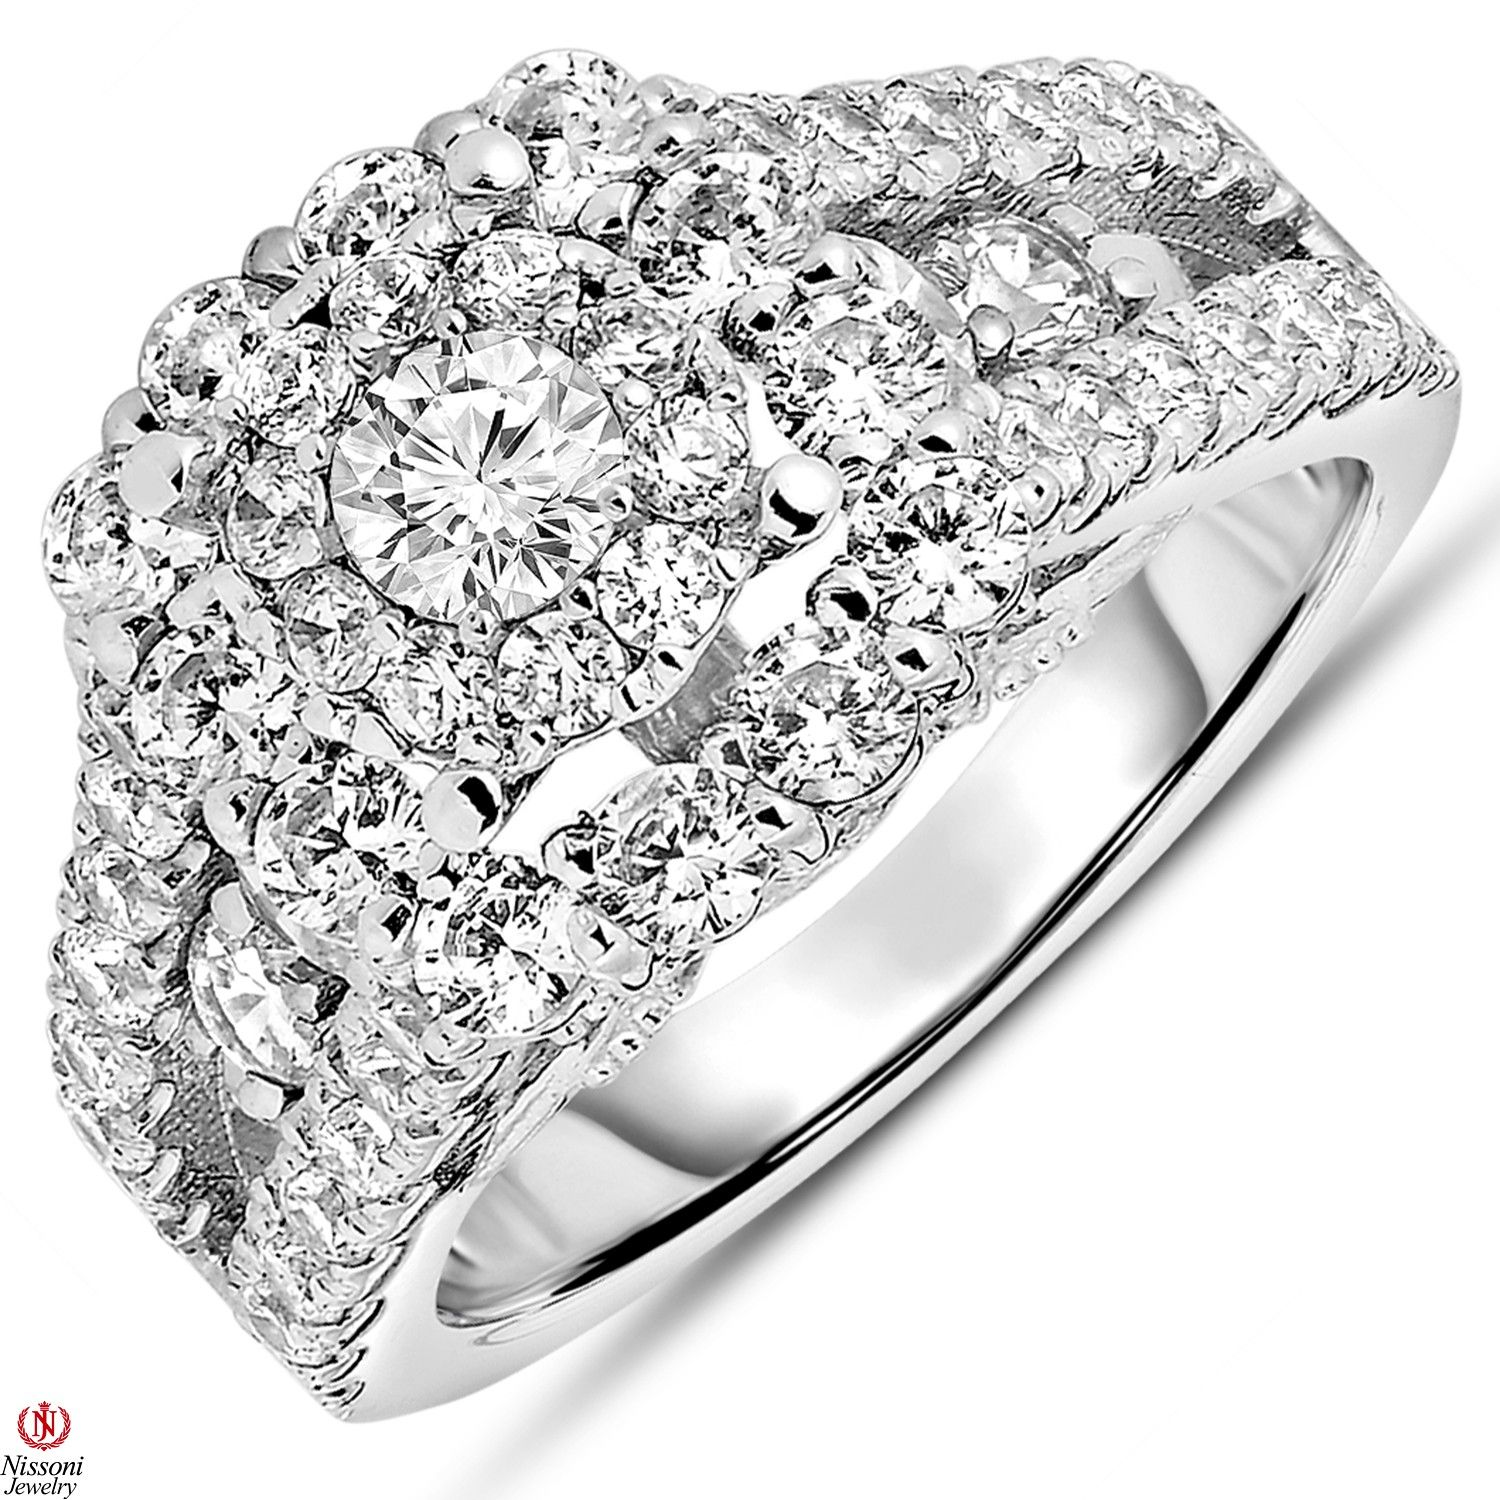 Ebay NissoniJewelry presents La s 2 1 4CT Diamond Engagement